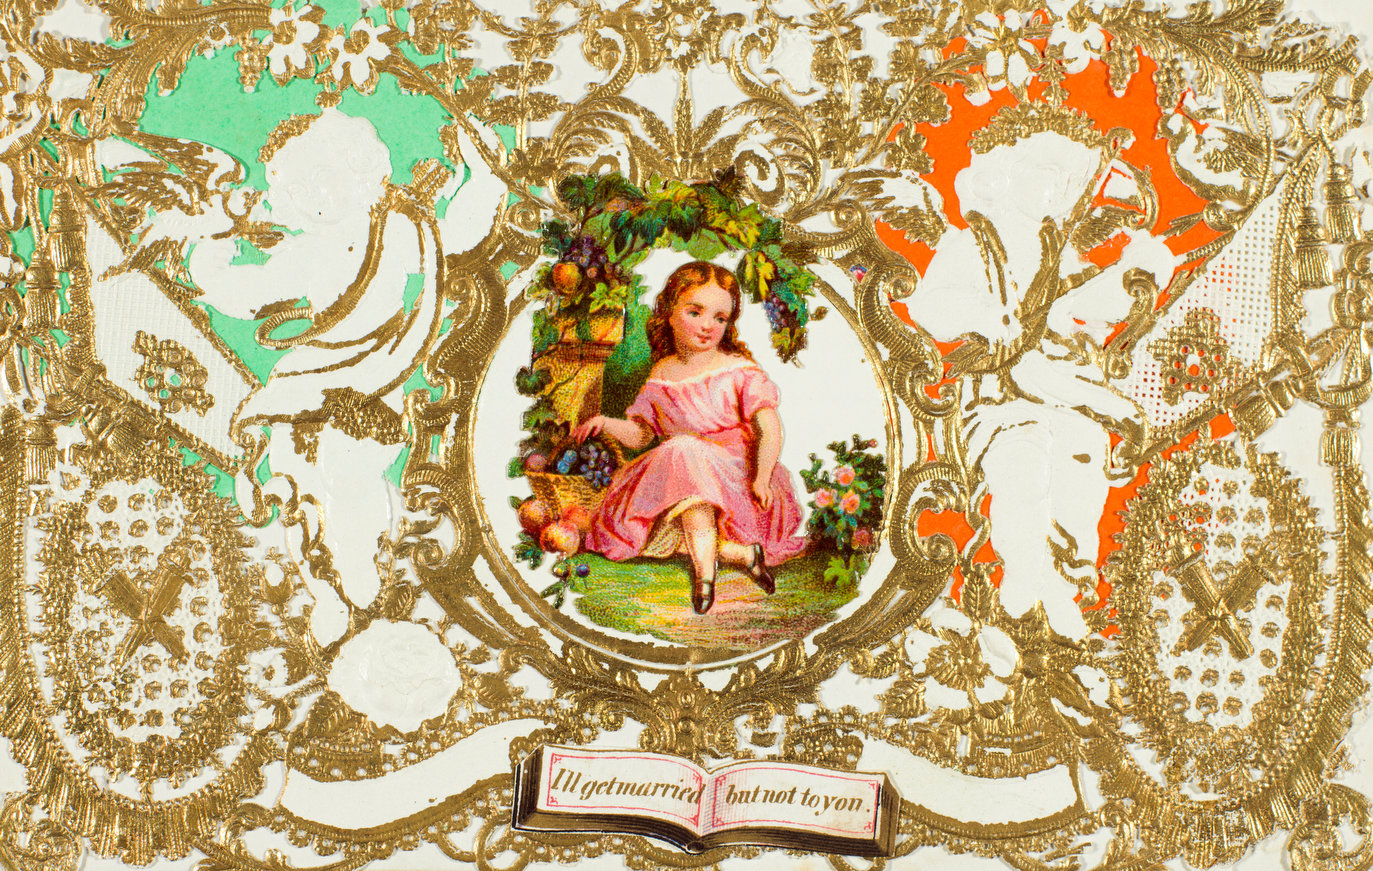 """A card from about 1855 with a biting message: """"I'll get married but not to you."""" It was created by Esther Howland, one of the most successful Valentine producers of the 19th century."""